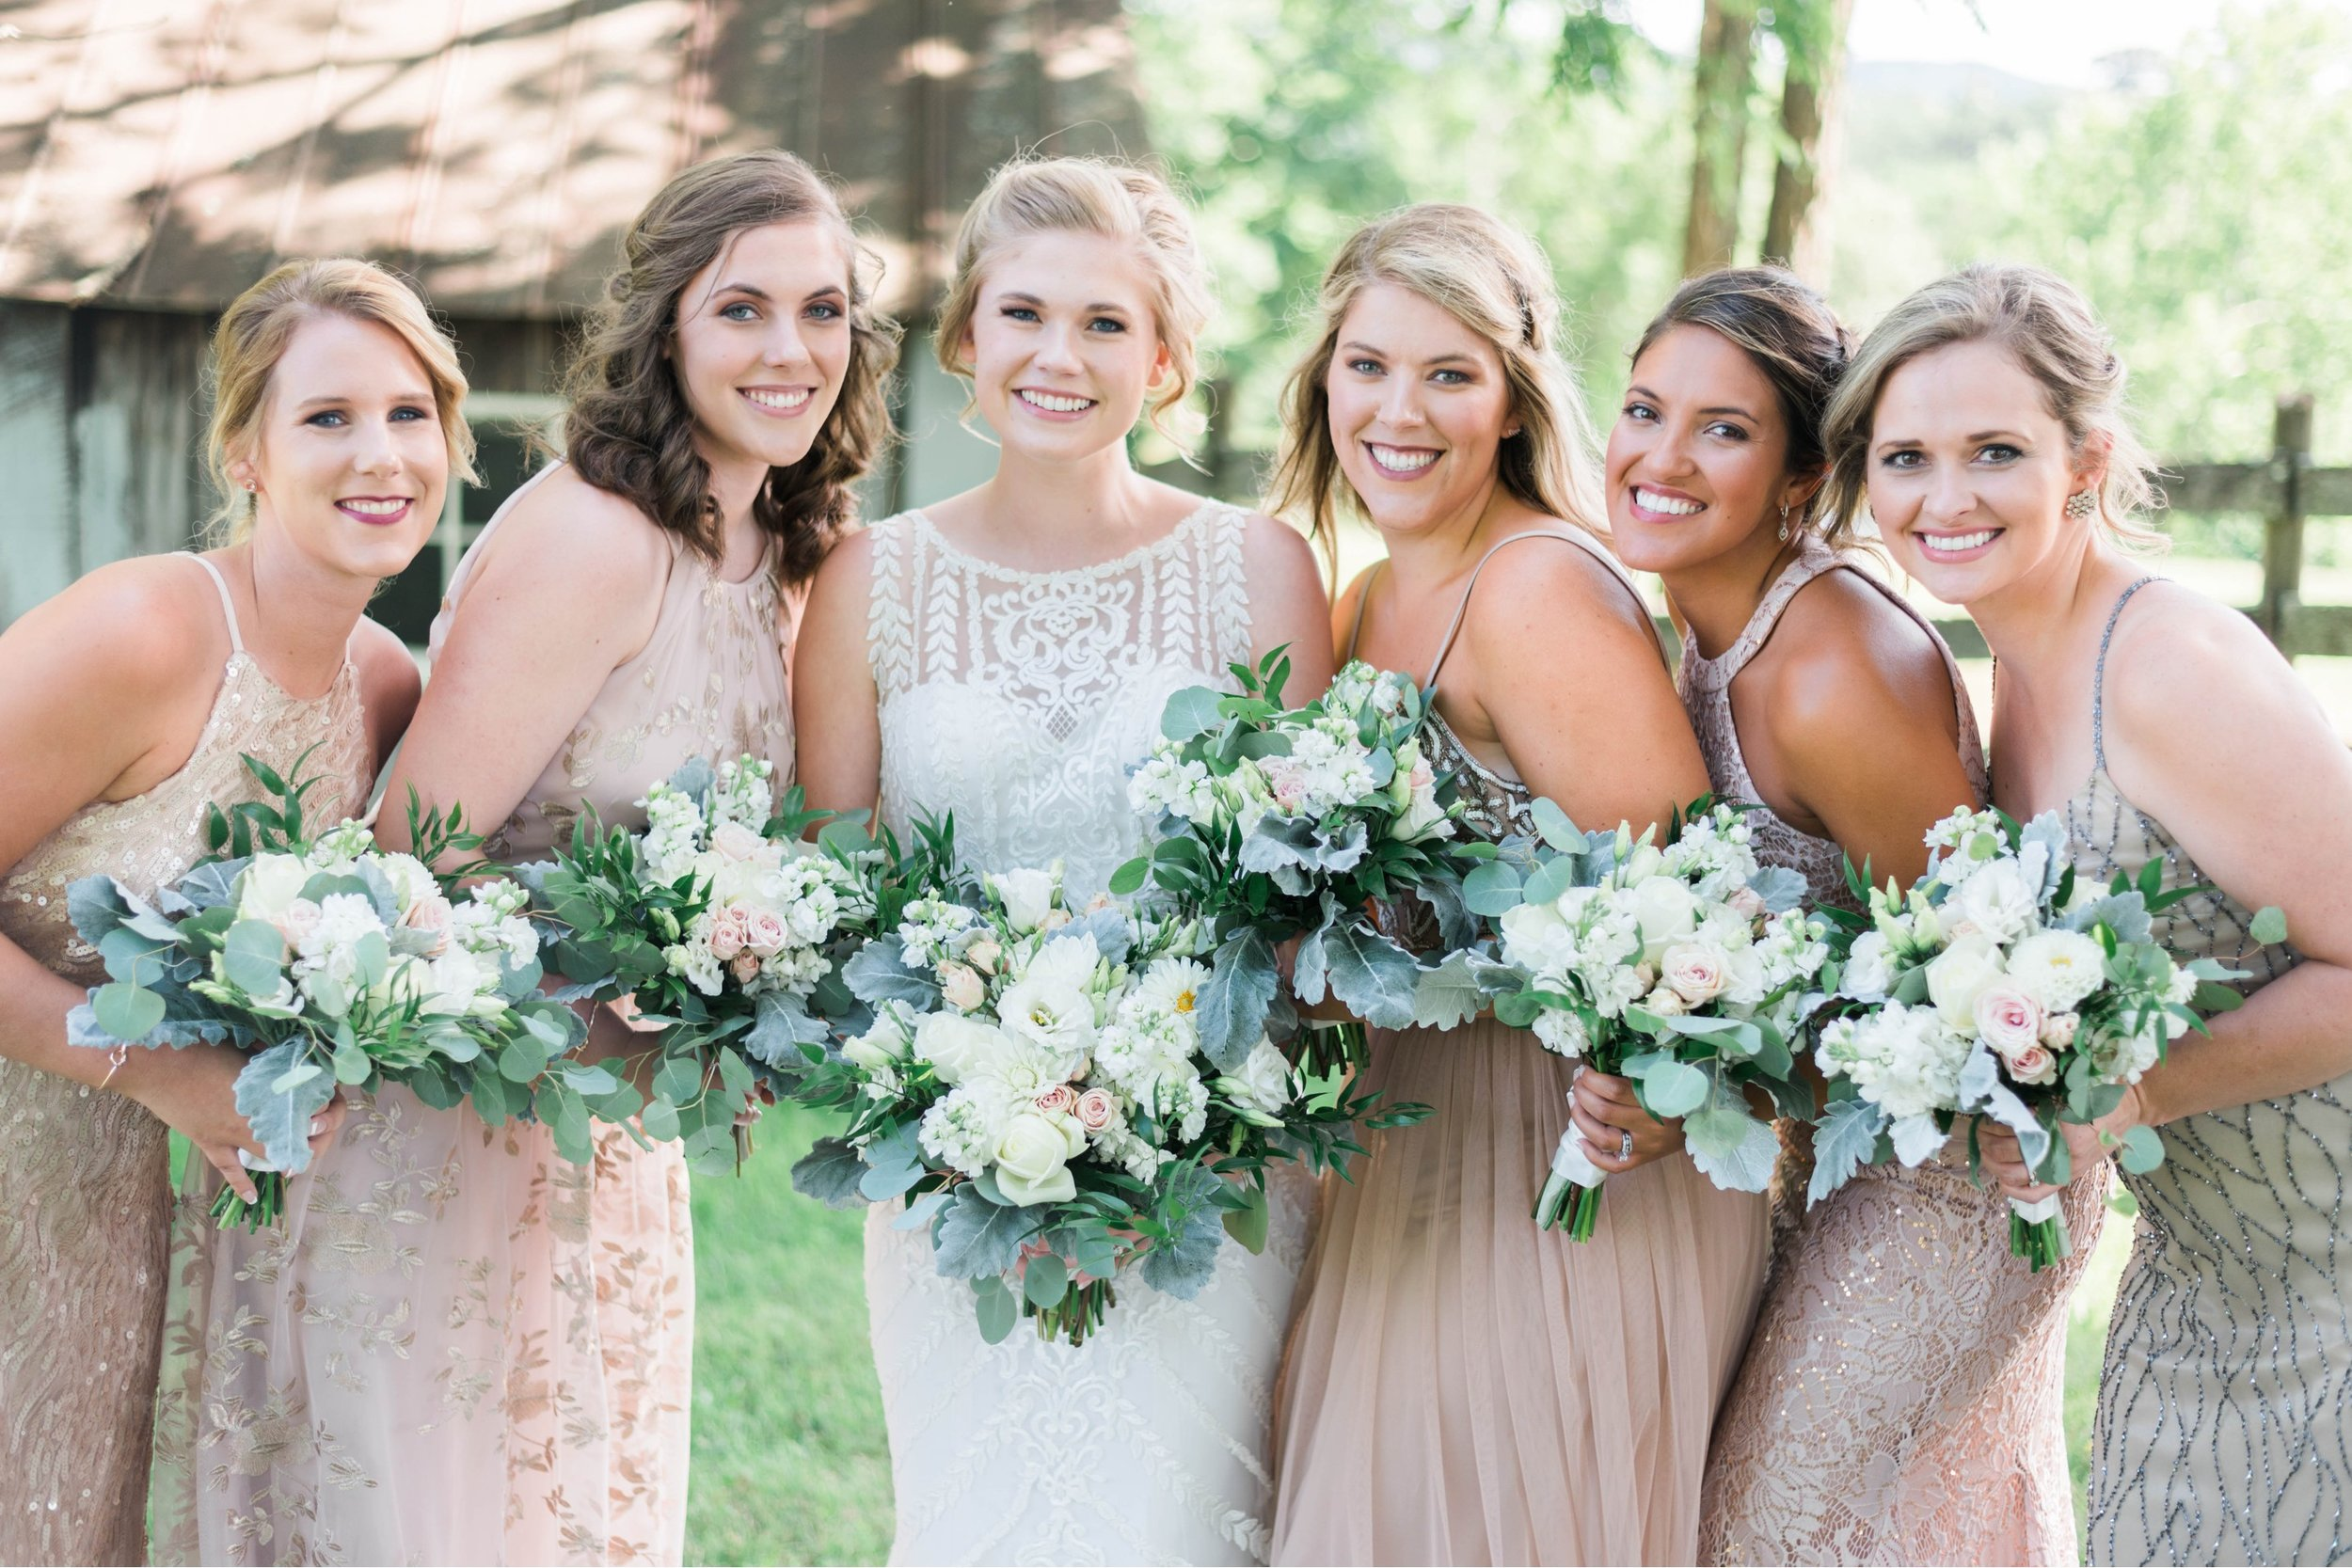 SorellaFarms_VirginiaWeddingPhotographer_BarnWedding_Lynchburgweddingphotographer_DanielleTyler 14.jpg